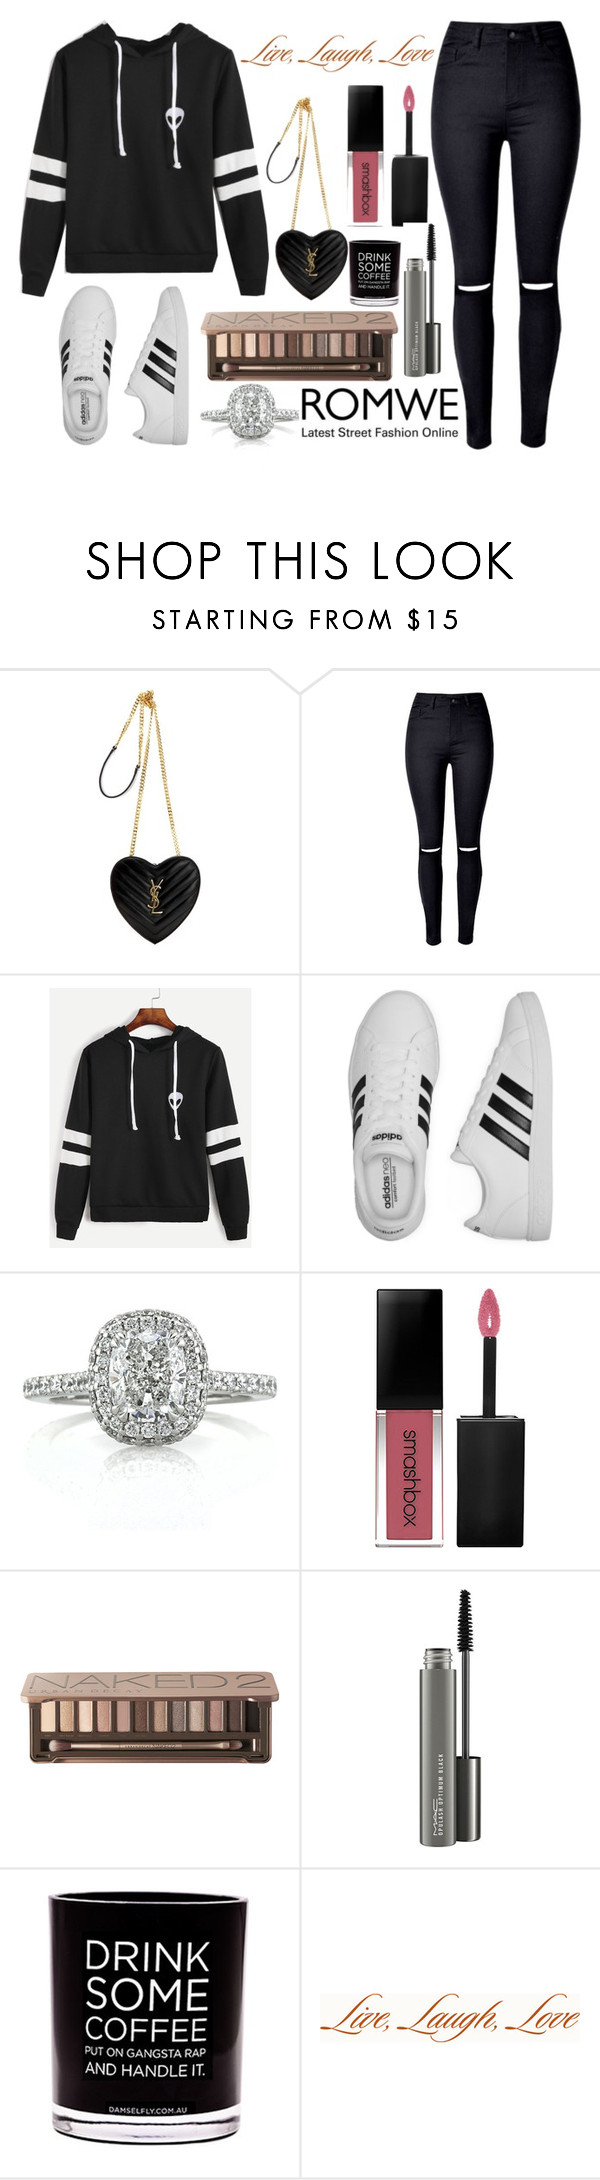 """""""Lush of Style: ✦Superstars✦"""" by fashionpassiongirlx ❤ liked on Polyvore featuring Yves Saint Laurent, adidas, Mark Broumand, Smashbox, Urban Decay, MAC Cosmetics, Damselfly Candles and Expressions"""